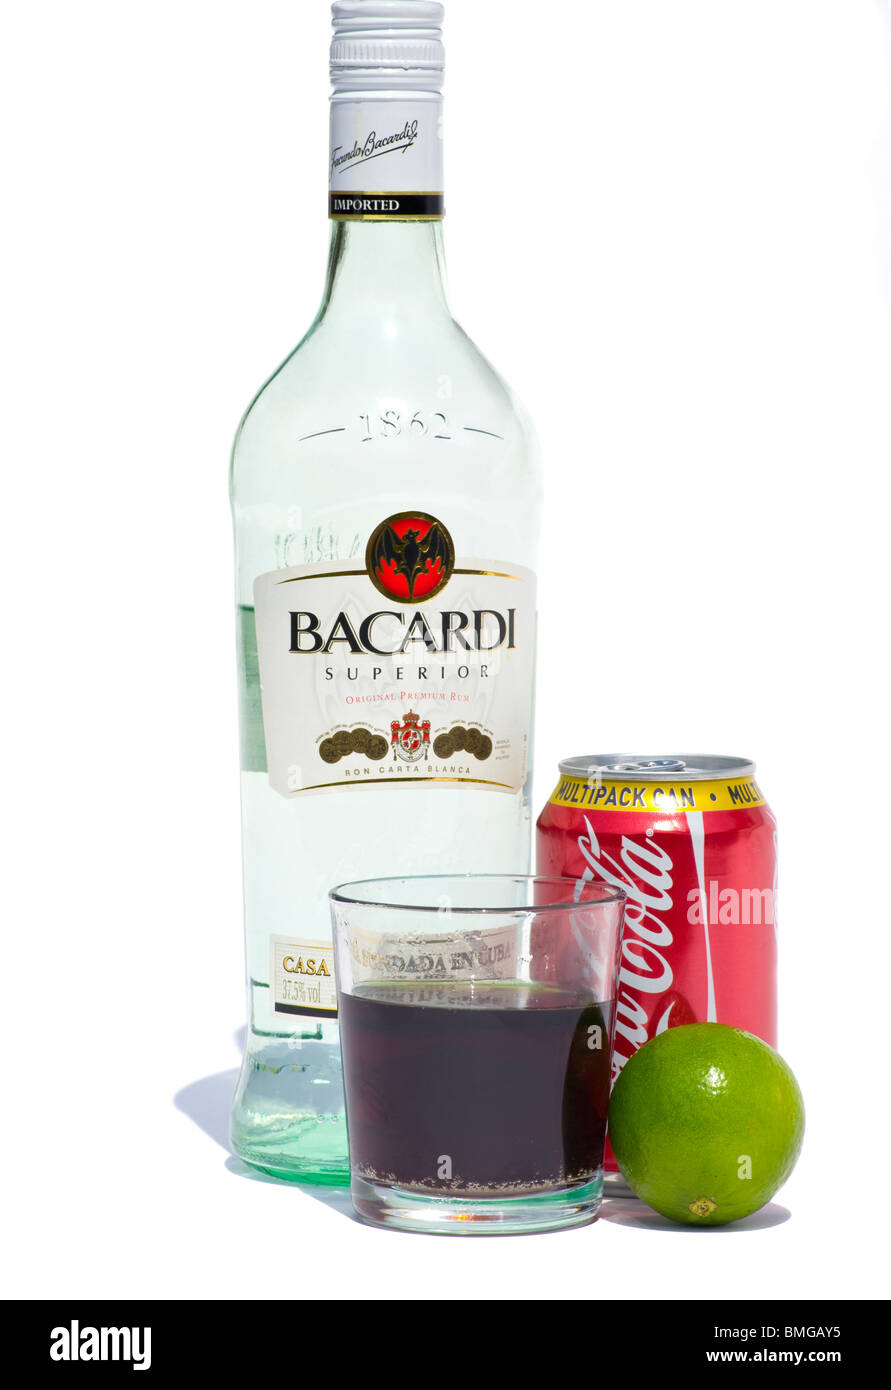 How to drink white bacardi 4